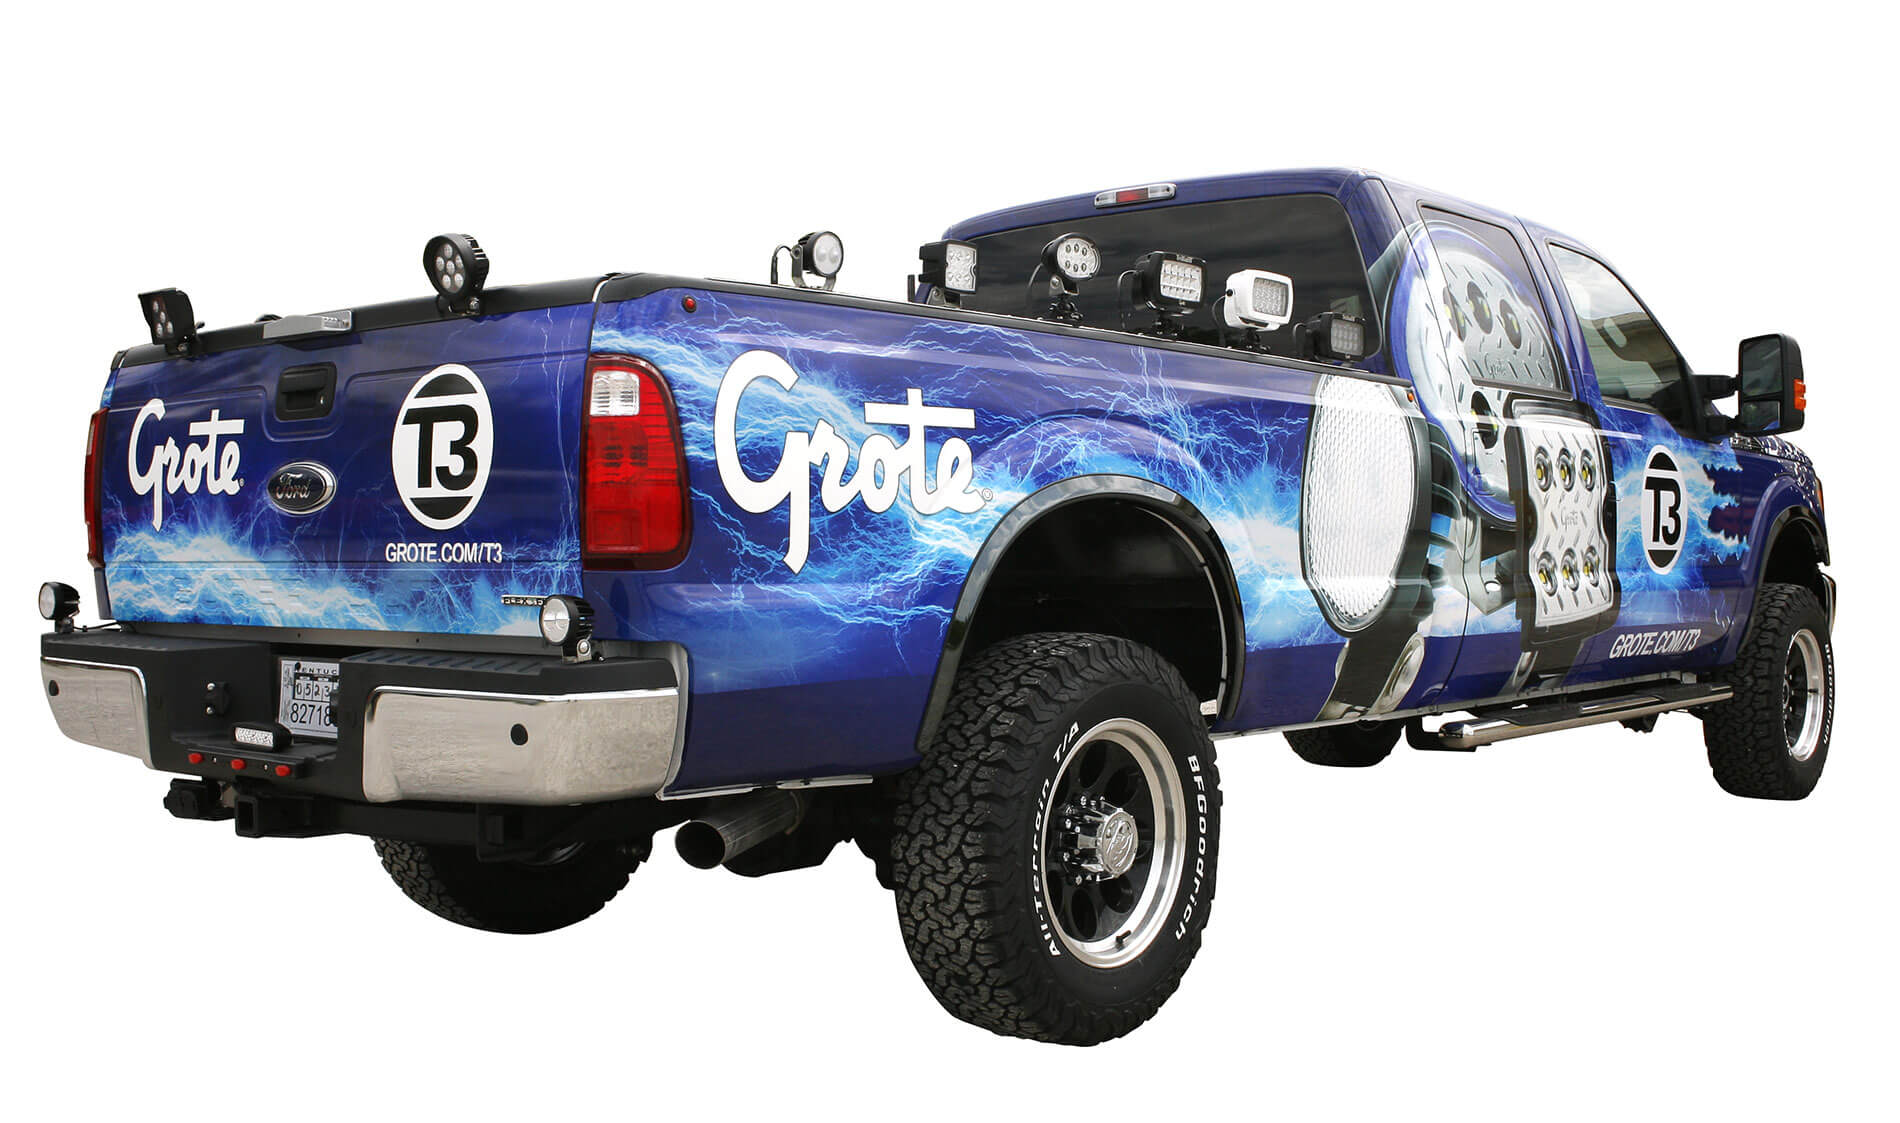 Grote's 2016 T3 truck with lights